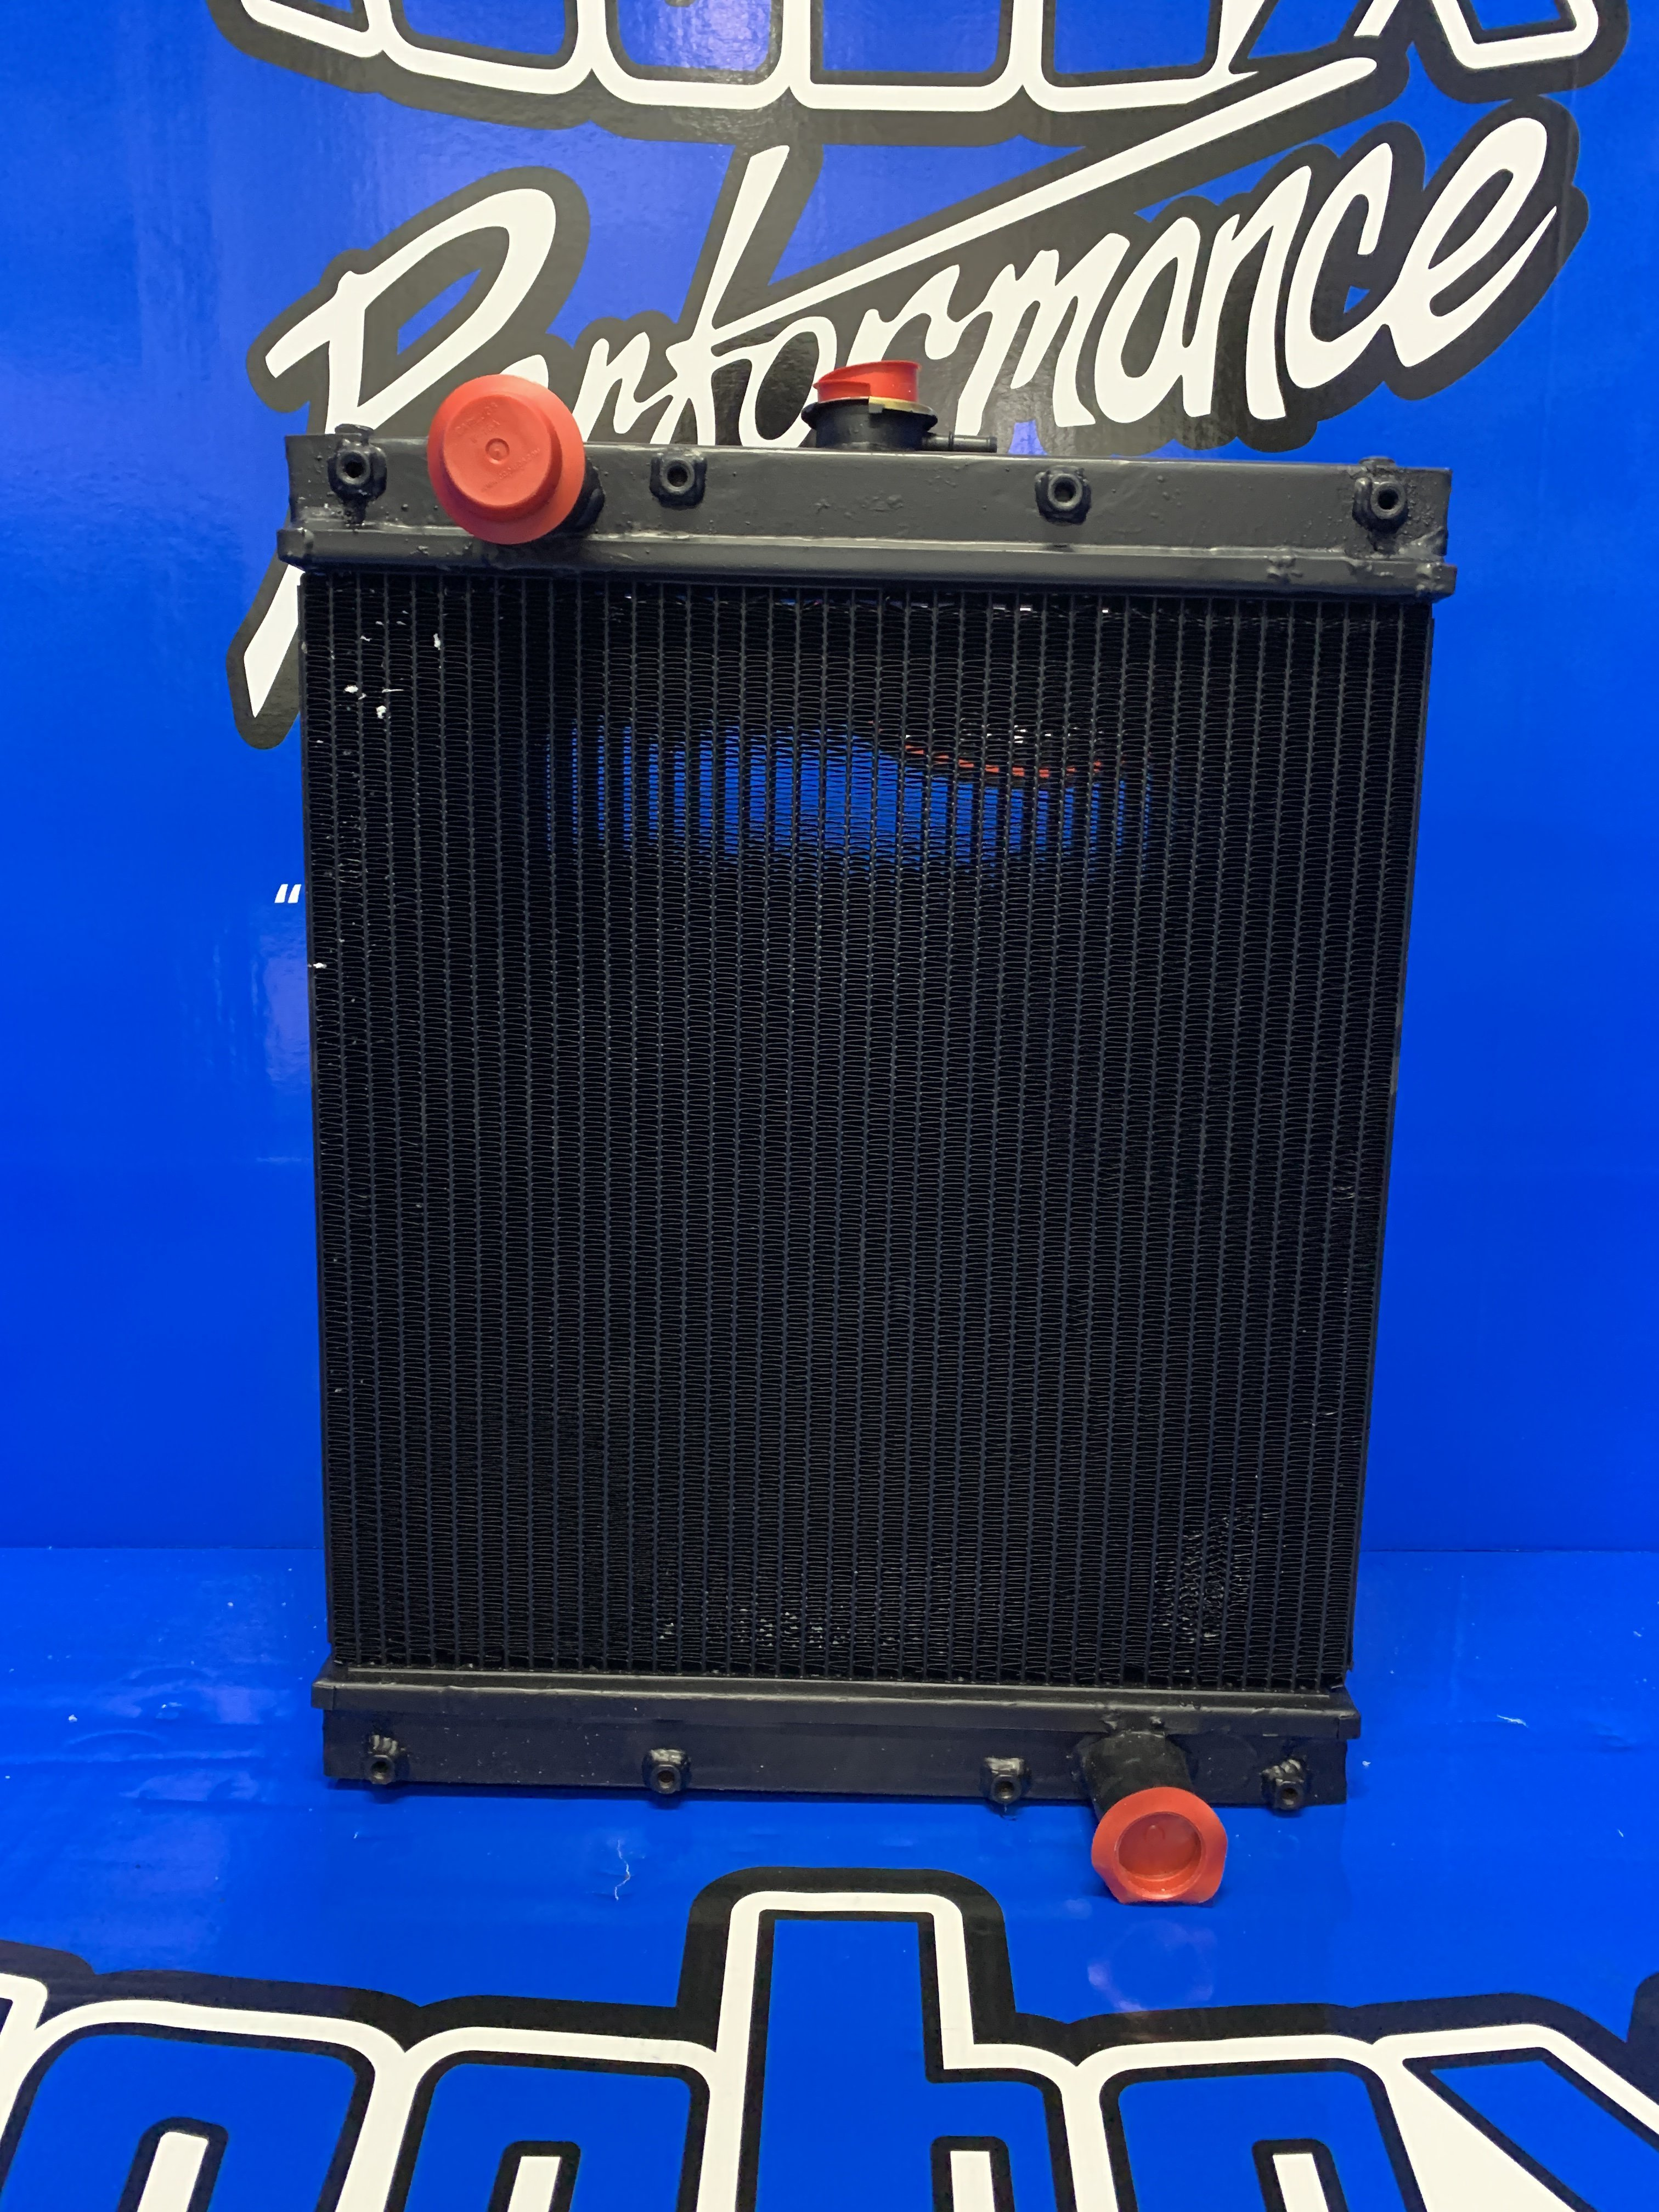 radiator-ford-new-holland-new-part-no-c5210260000-141412-15098901